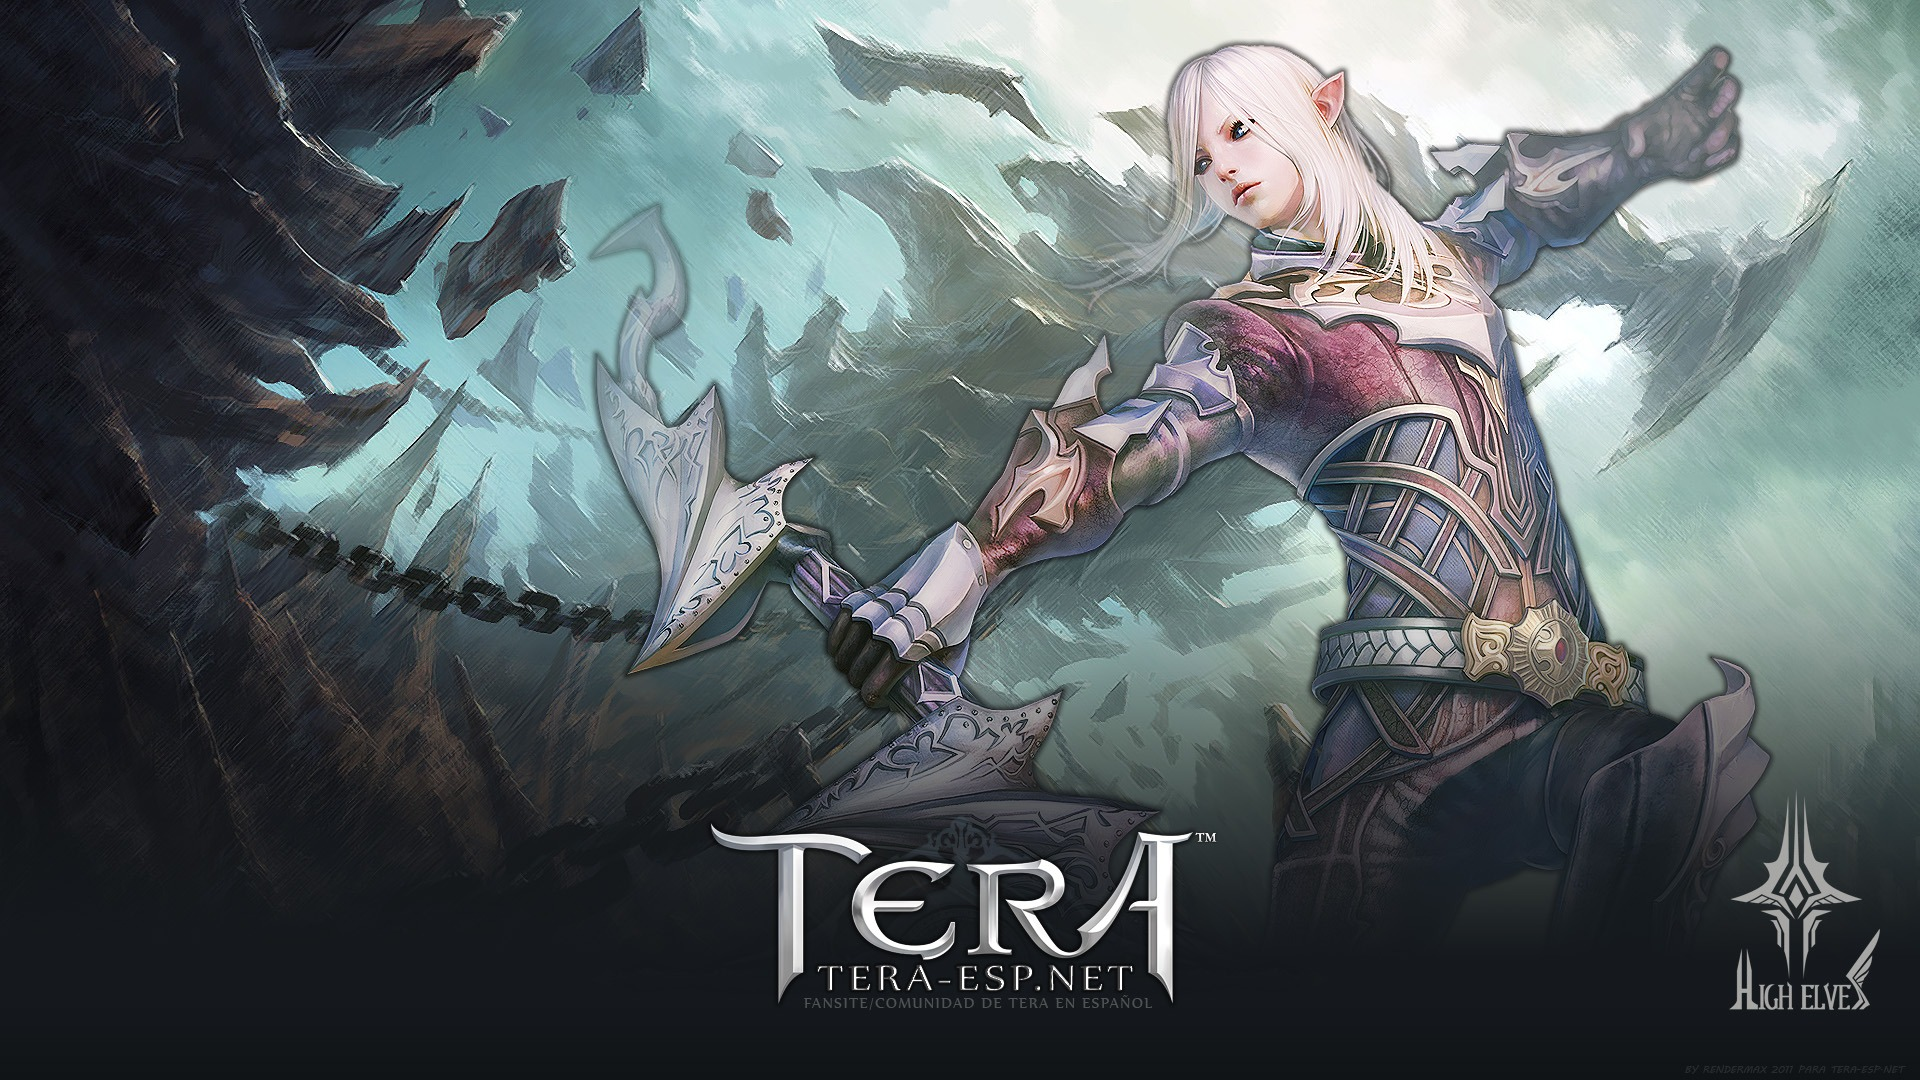 Tera Game Hd Wallpaper 06 Avance 10wallpapercom